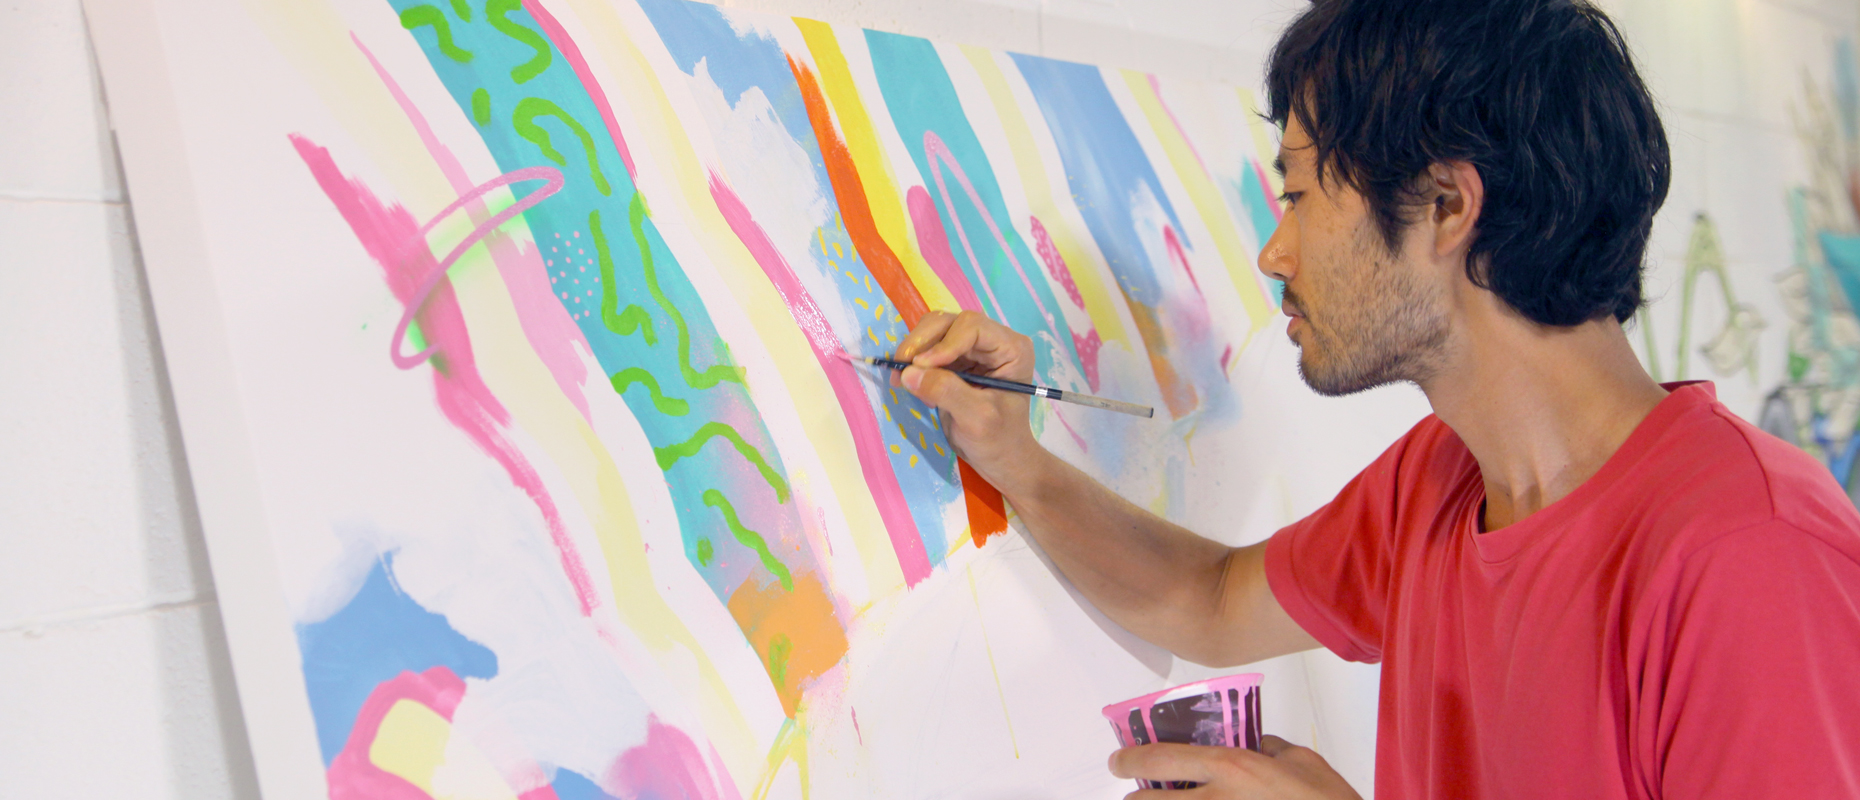 Yoh Nagao painting on canvas